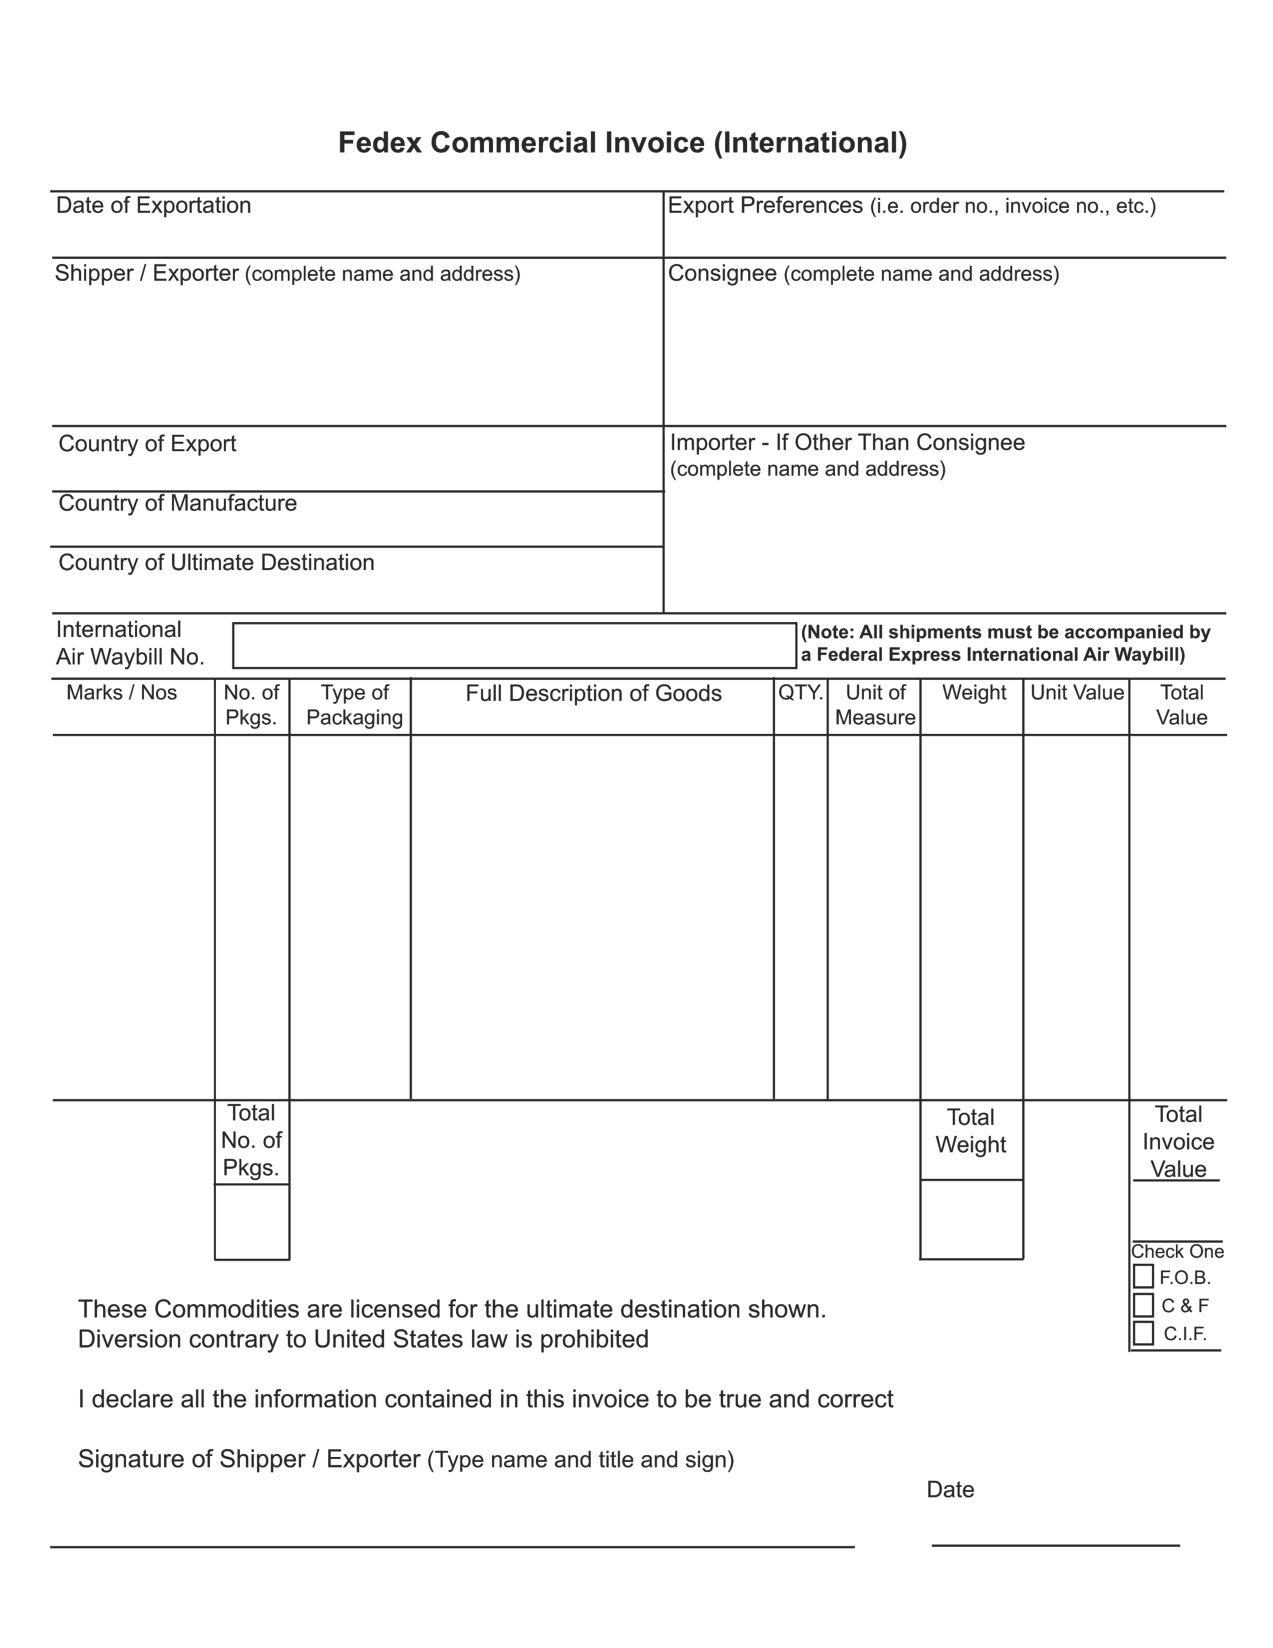 fedex commercial invoice form best business template fedex international commercial invoice form